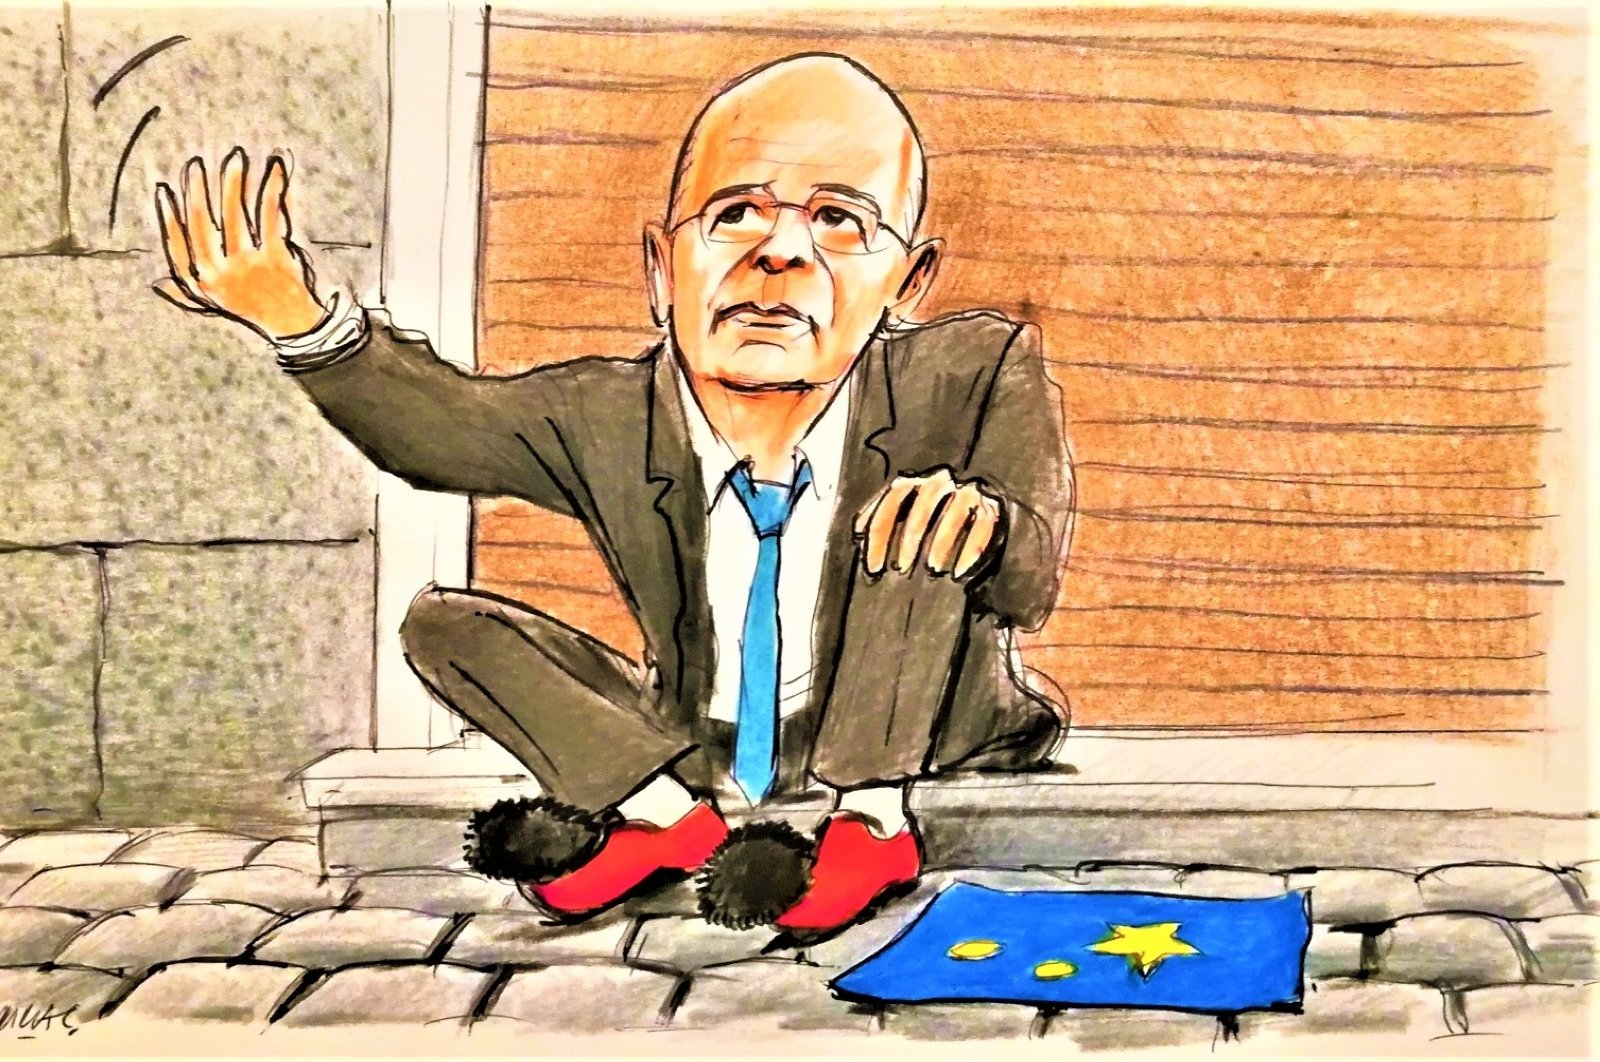 This illustration by Erhan Yalvaç satirically depicts Greek Foreign Minister Nikos Dendias begging for help besides a European Union flag after the Greek minister controversially threatened Turkey with possible EU sanctions despite there being no such implication from Brussels.